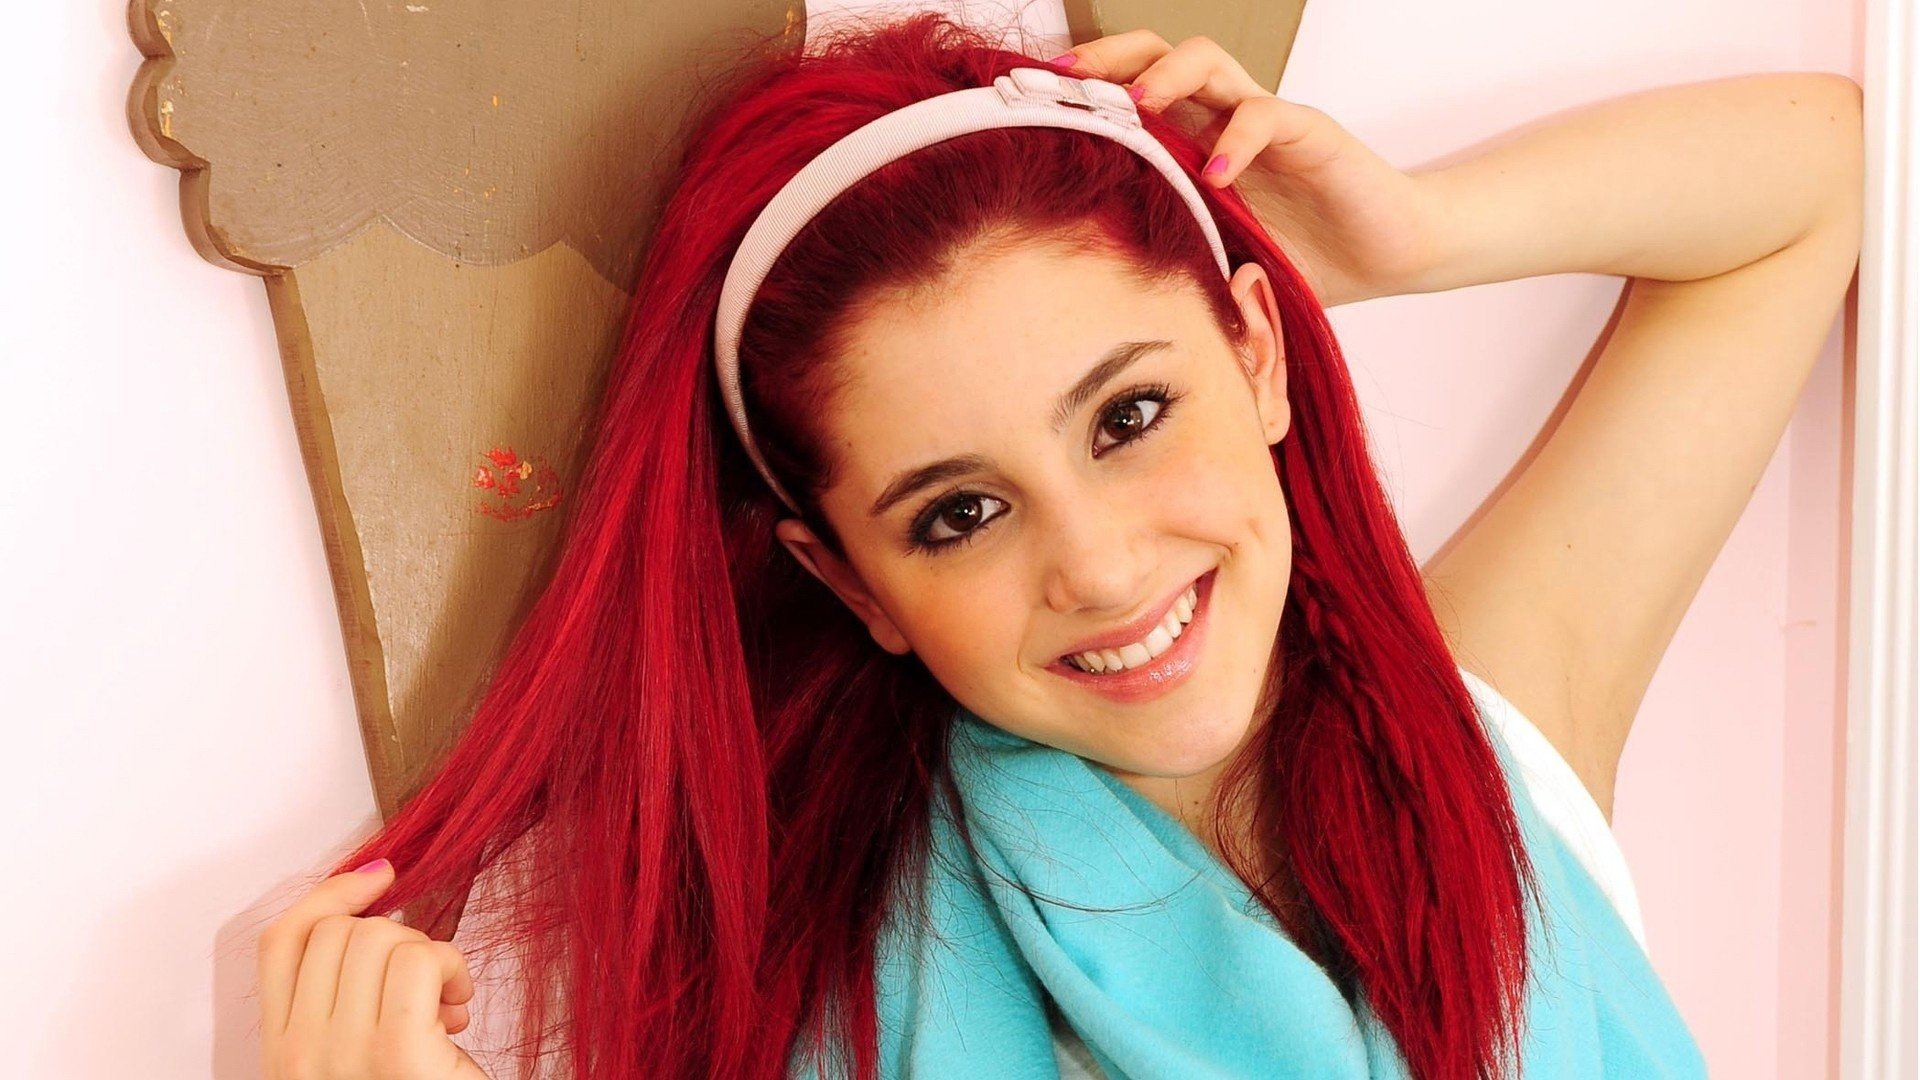 Download 1080p Ariana Grande desktop background ID:132259 for free